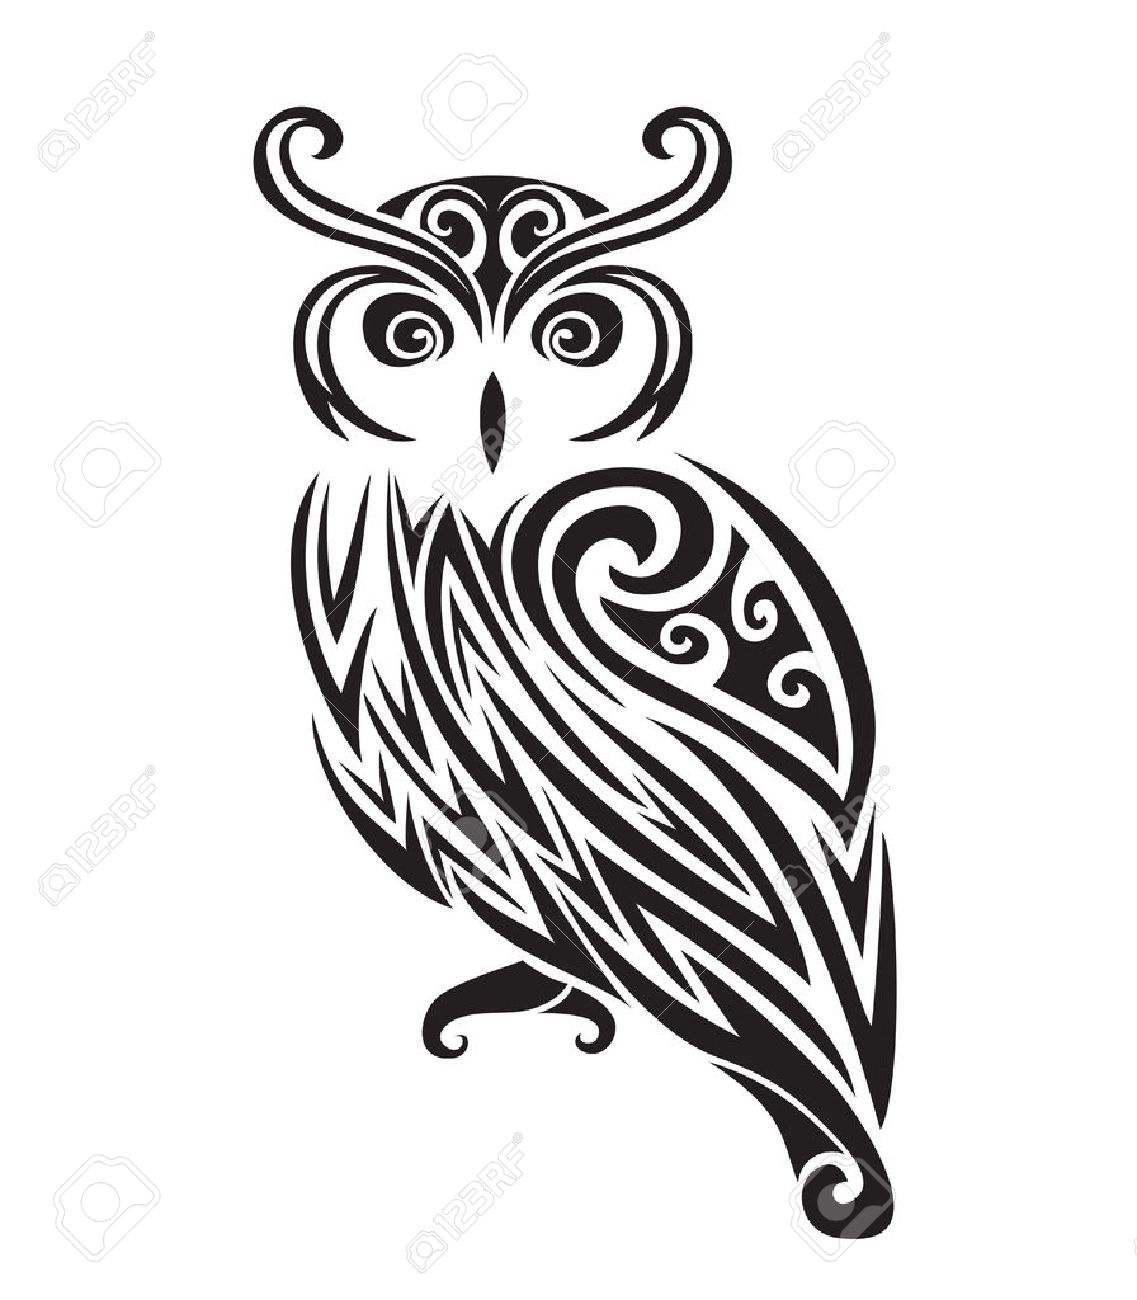 7,162 Owl Silhouette Stock Vector Illustration And Royalty Free Owl ...